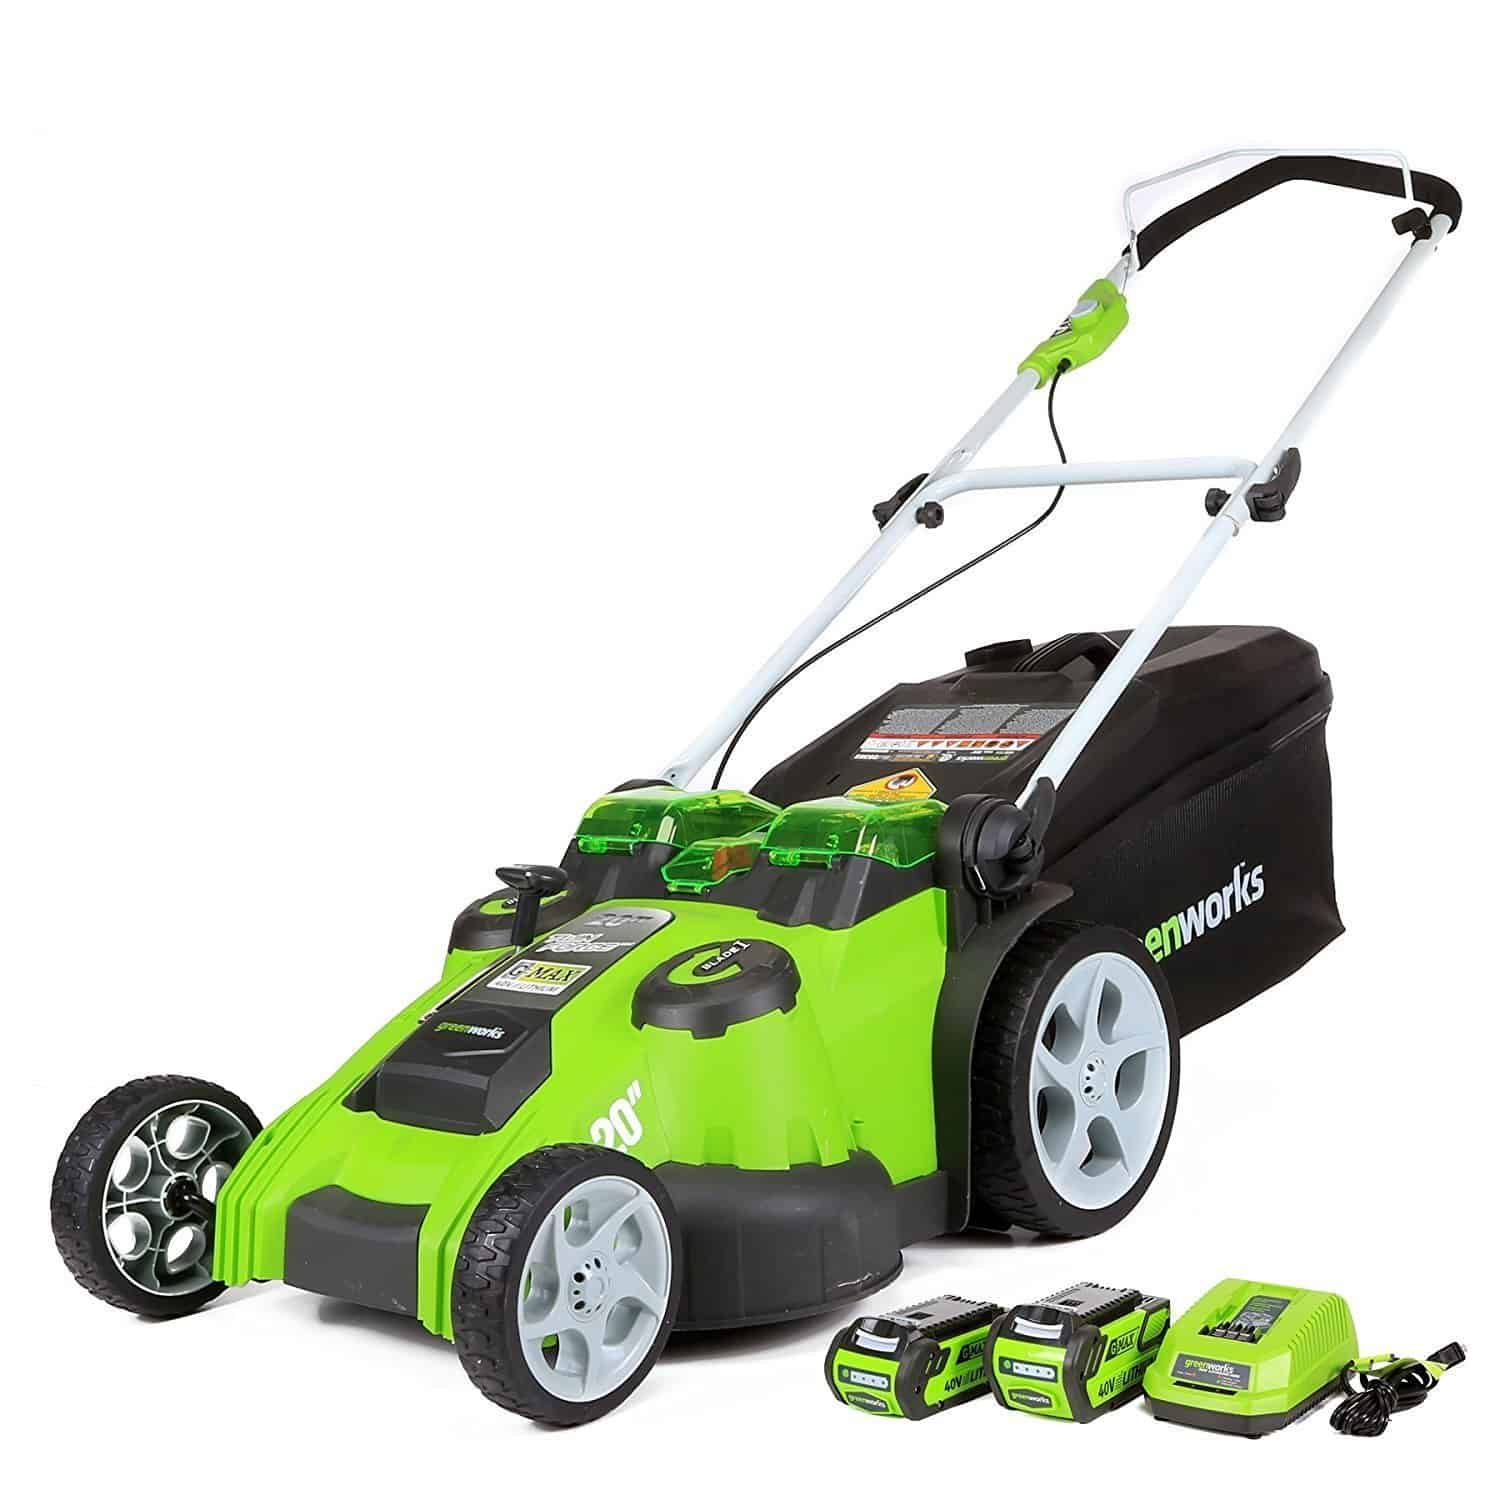 Greenworks 40v Cordless Dual Blade Lawn Mower Review 49cm